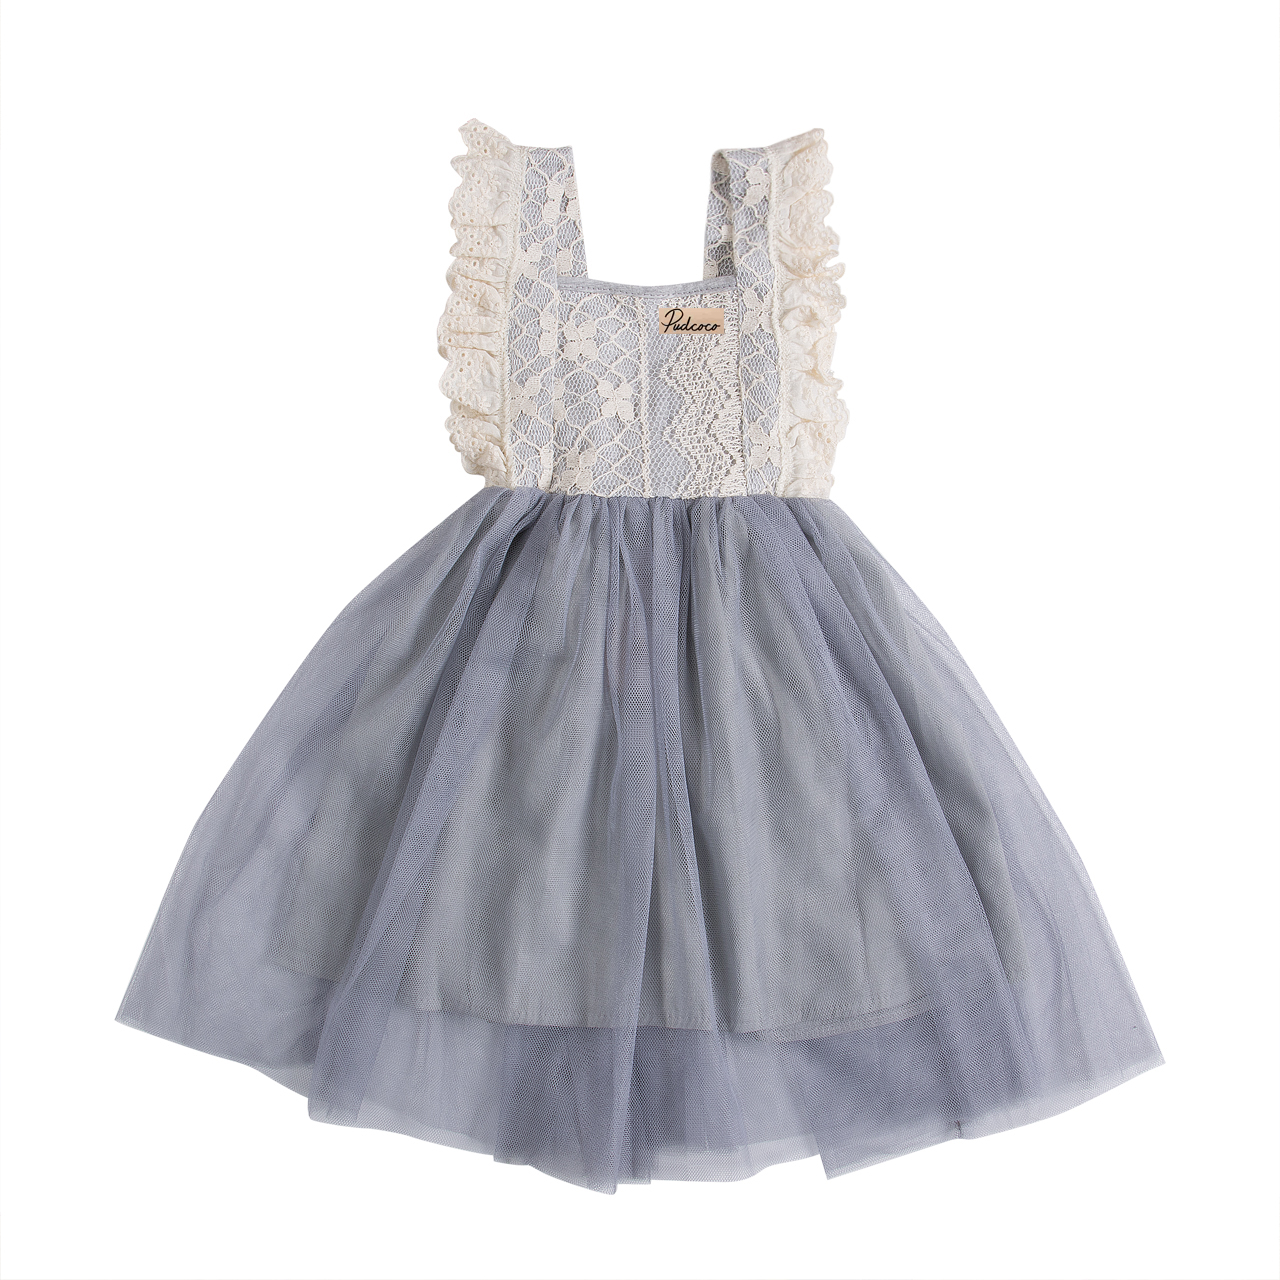 229d05a6f515 Summer Toddler Kids Baby Girl Floral Cotton Lace Sleeveless Bowknot Party  Bow Grey Dress Sundress Clothes